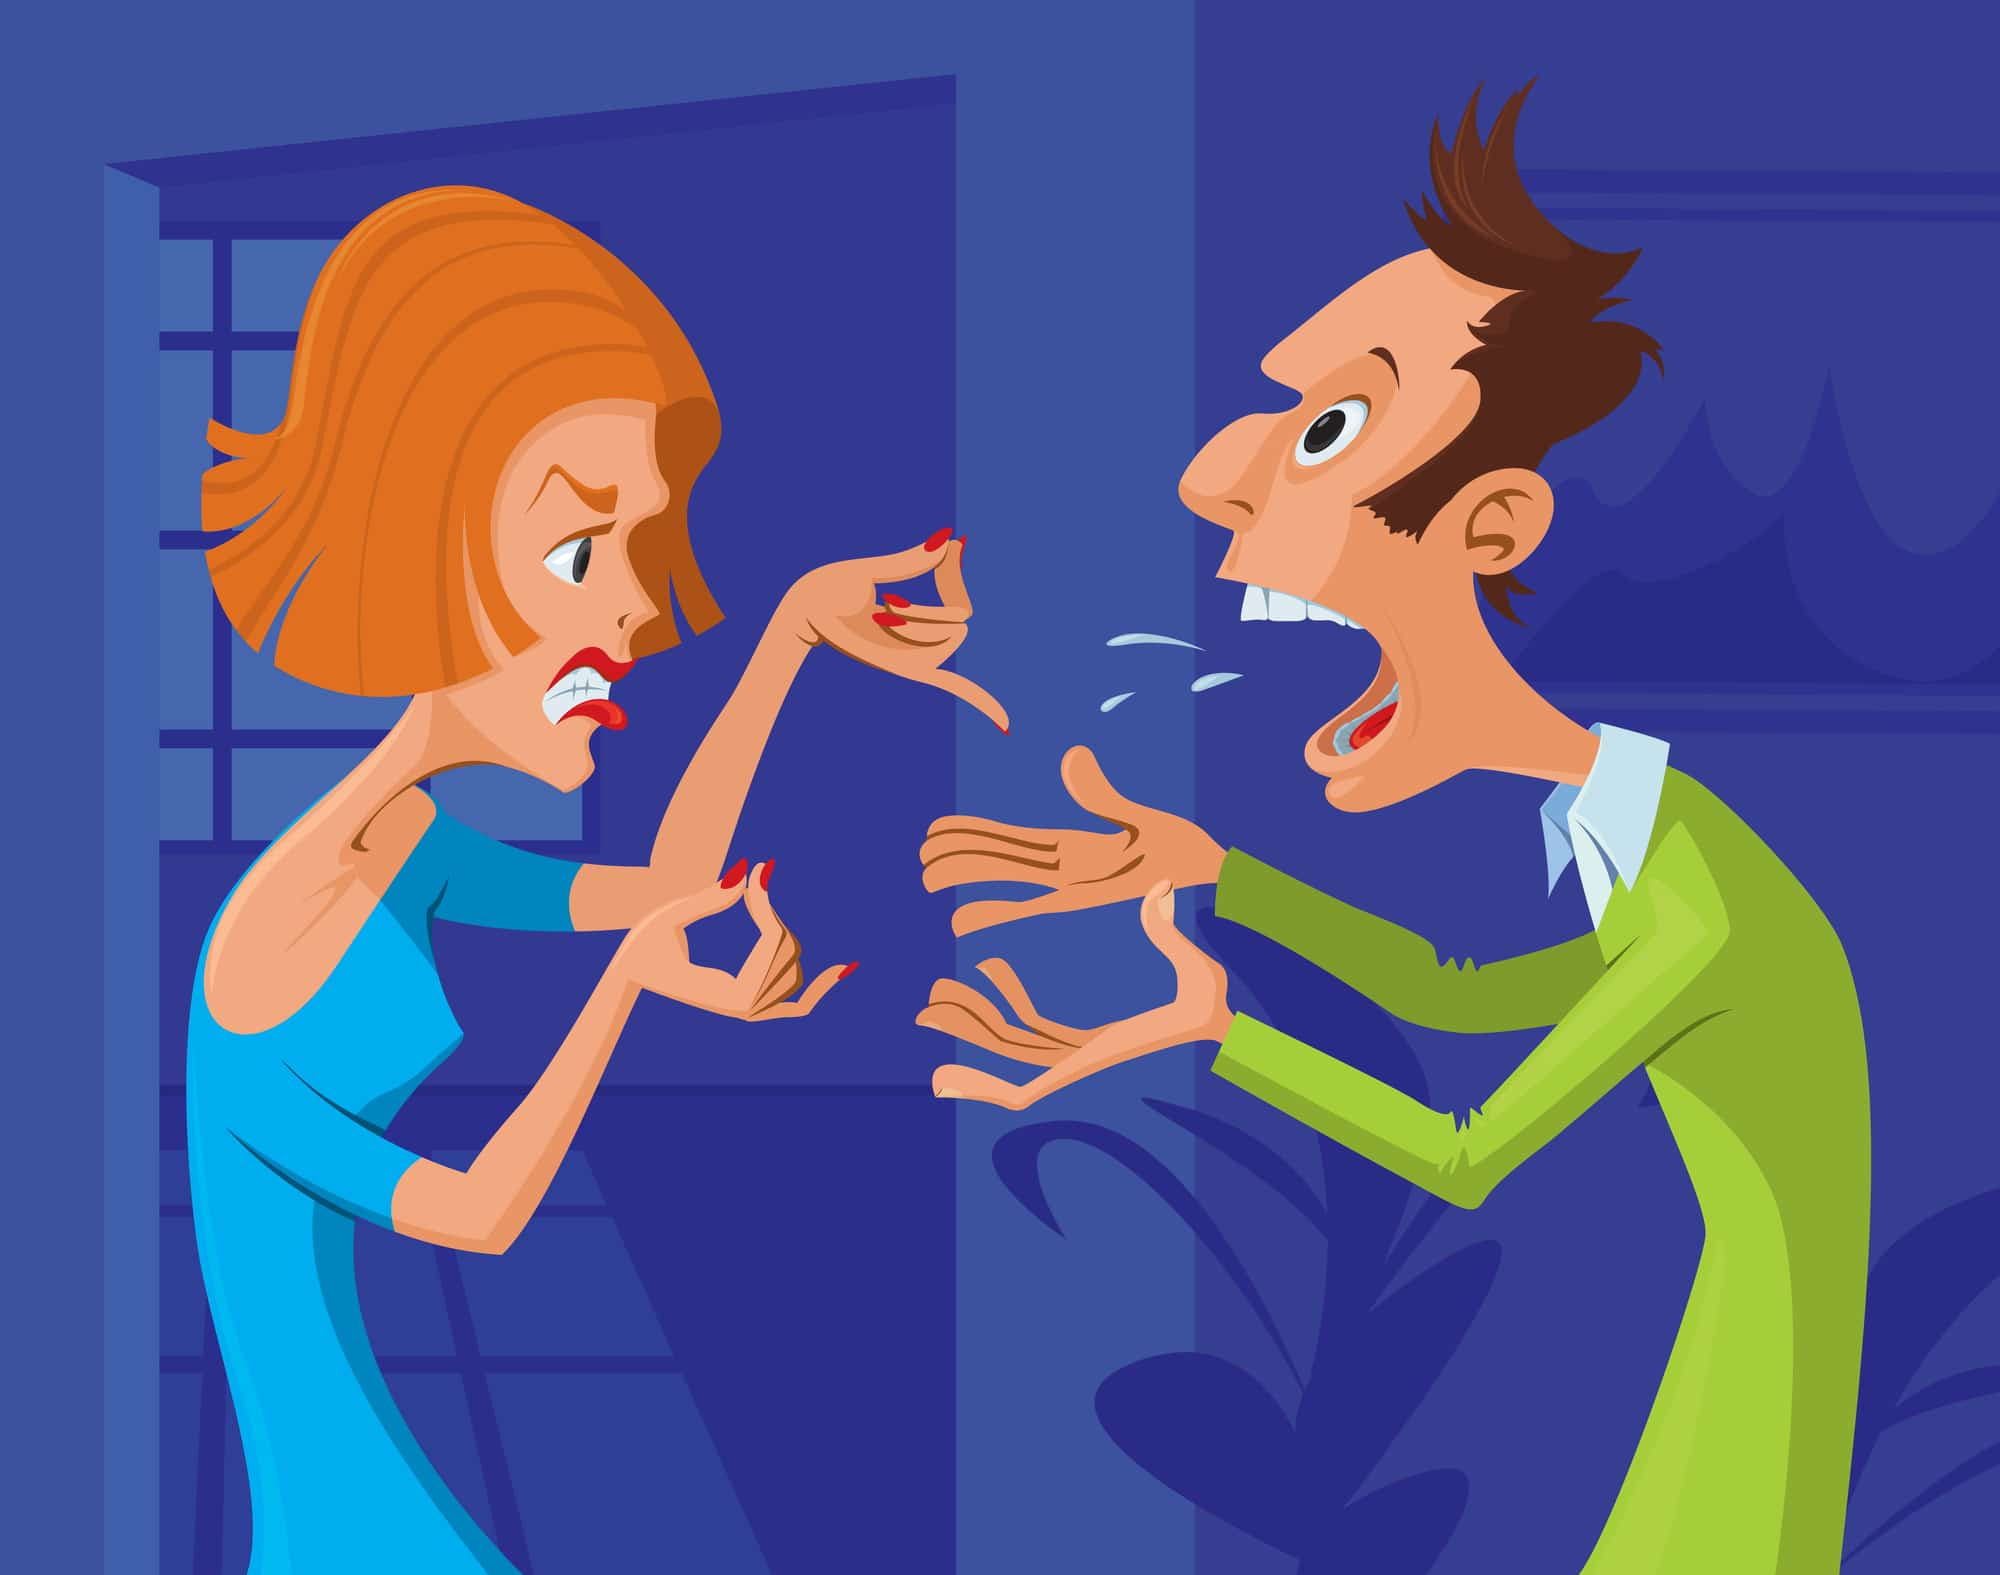 A couple in a bad, or somewhat negative mood shouting at eachother